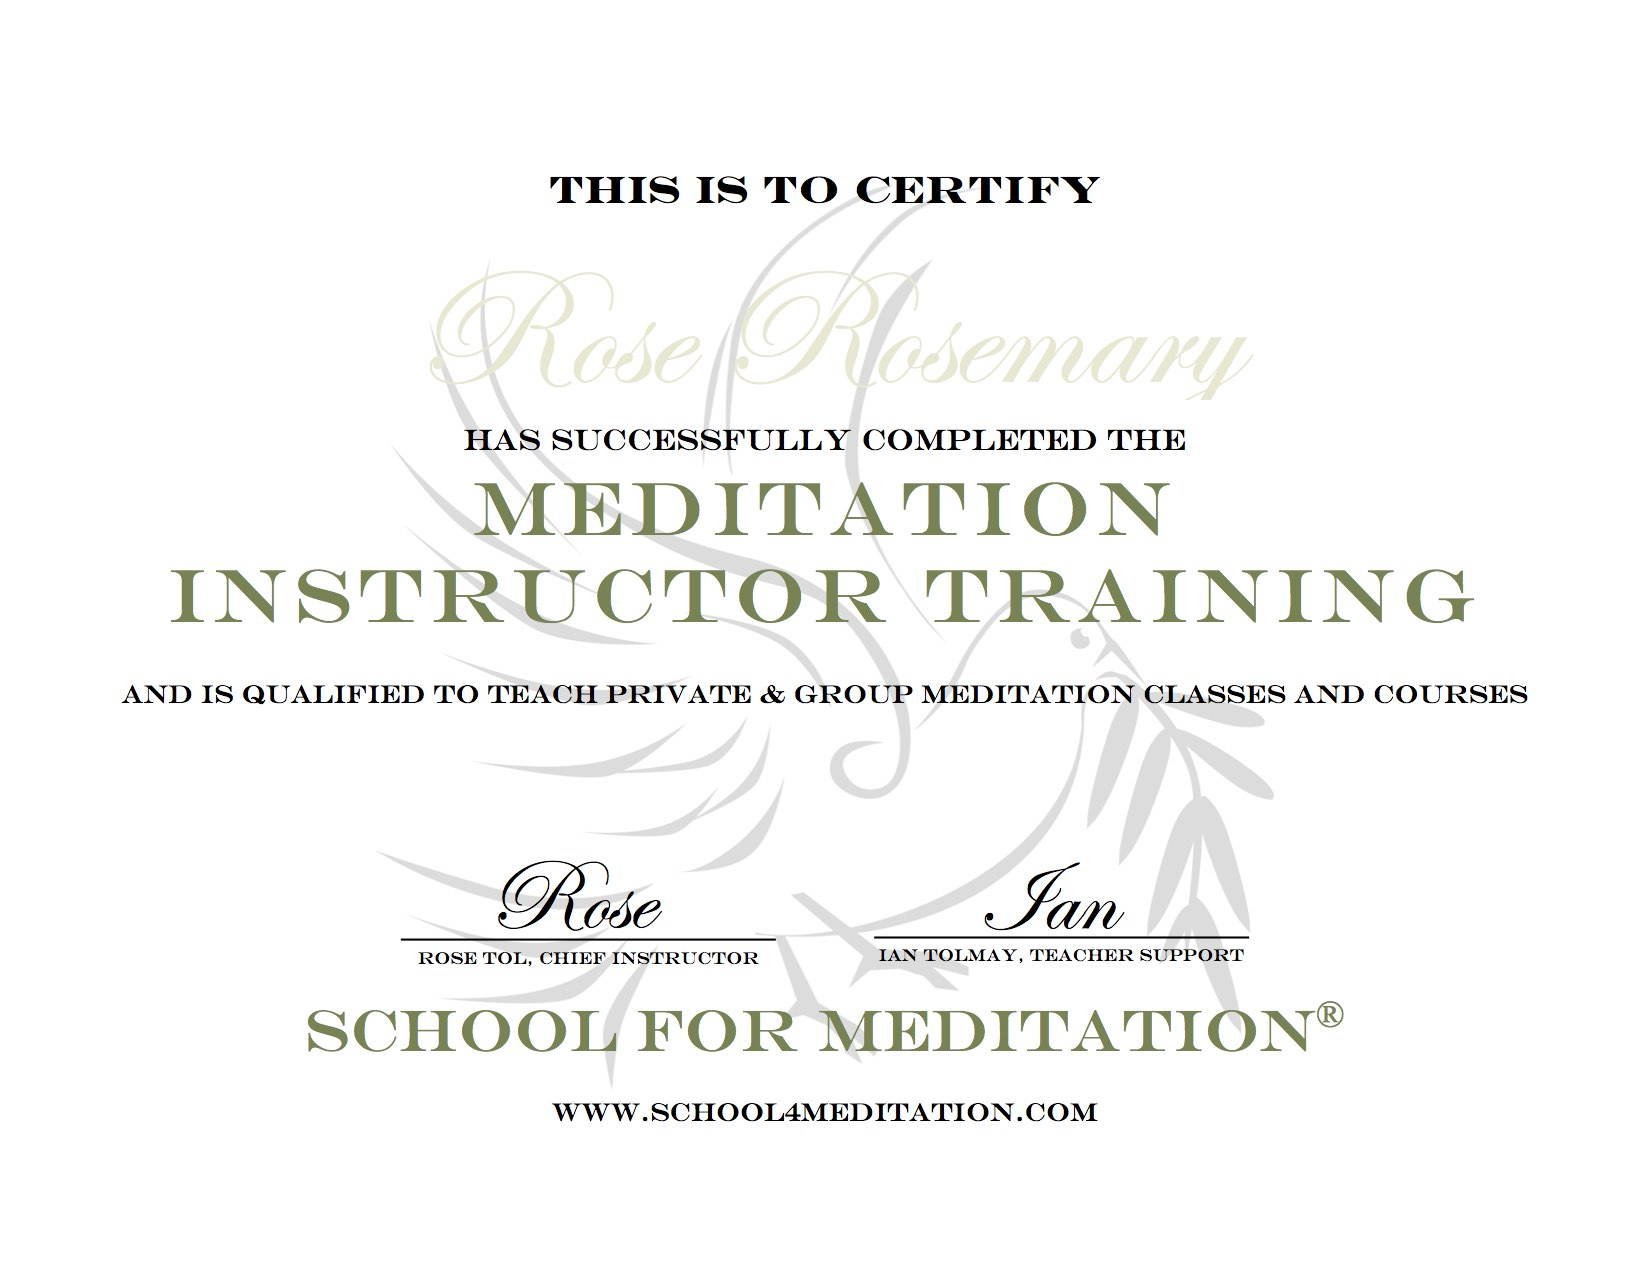 The school for meditation blog learn share inspire and instruct others and receive a meditation teacher certification xflitez Gallery